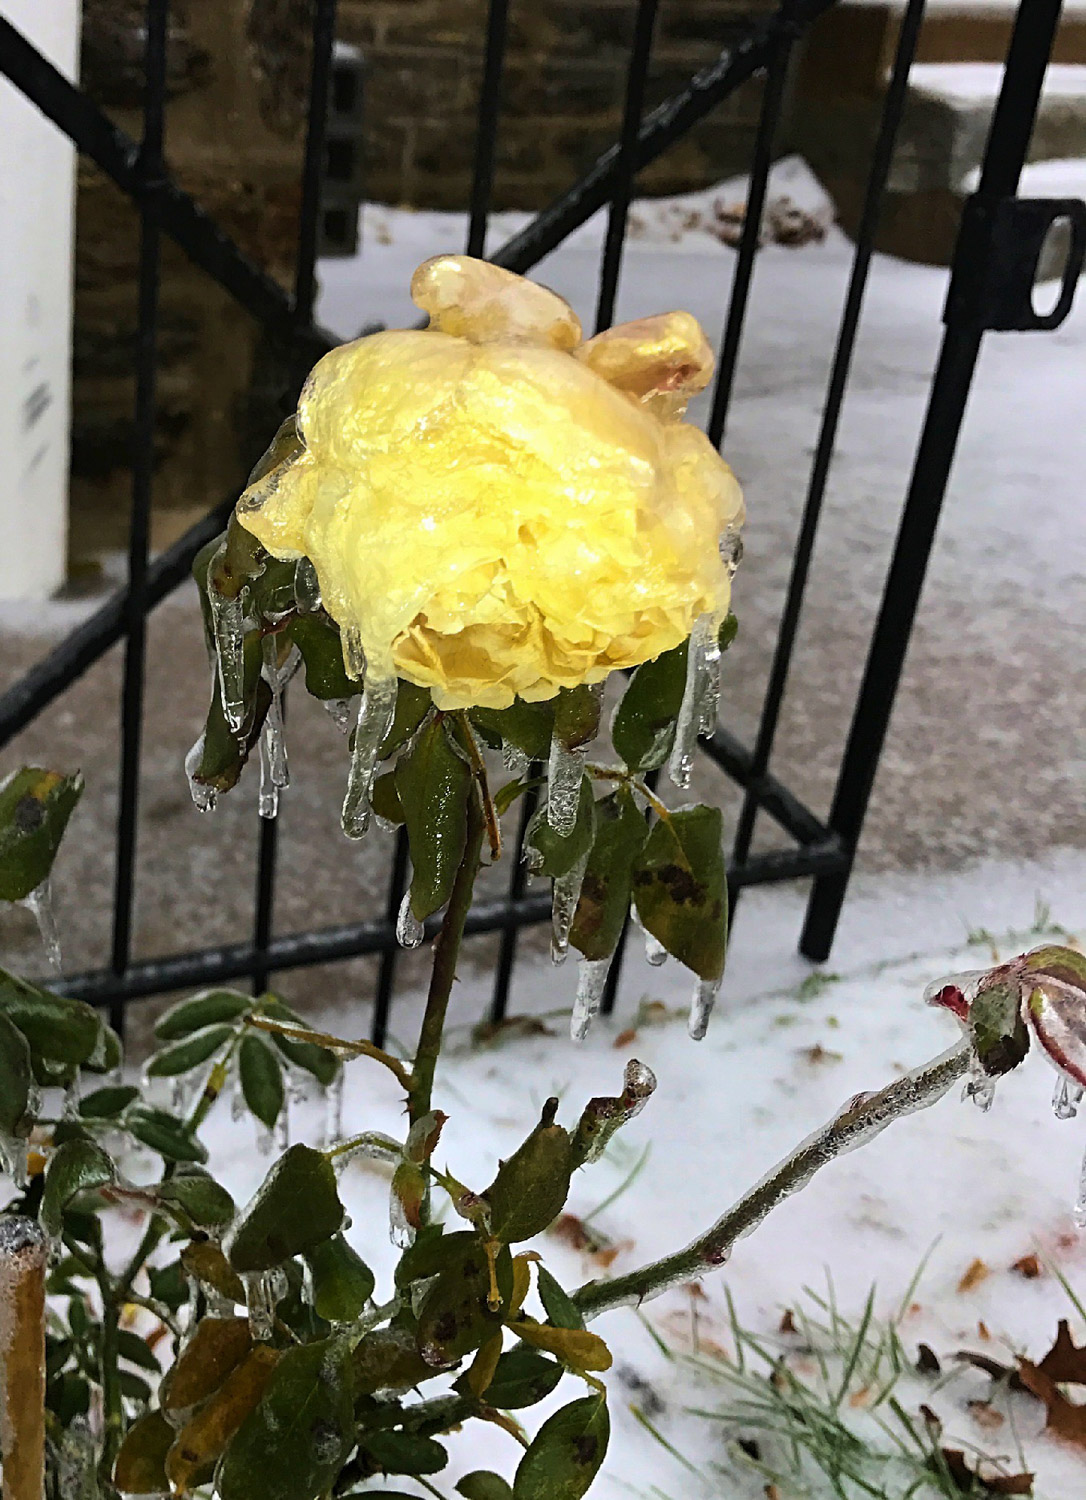 Frozen yellow rose